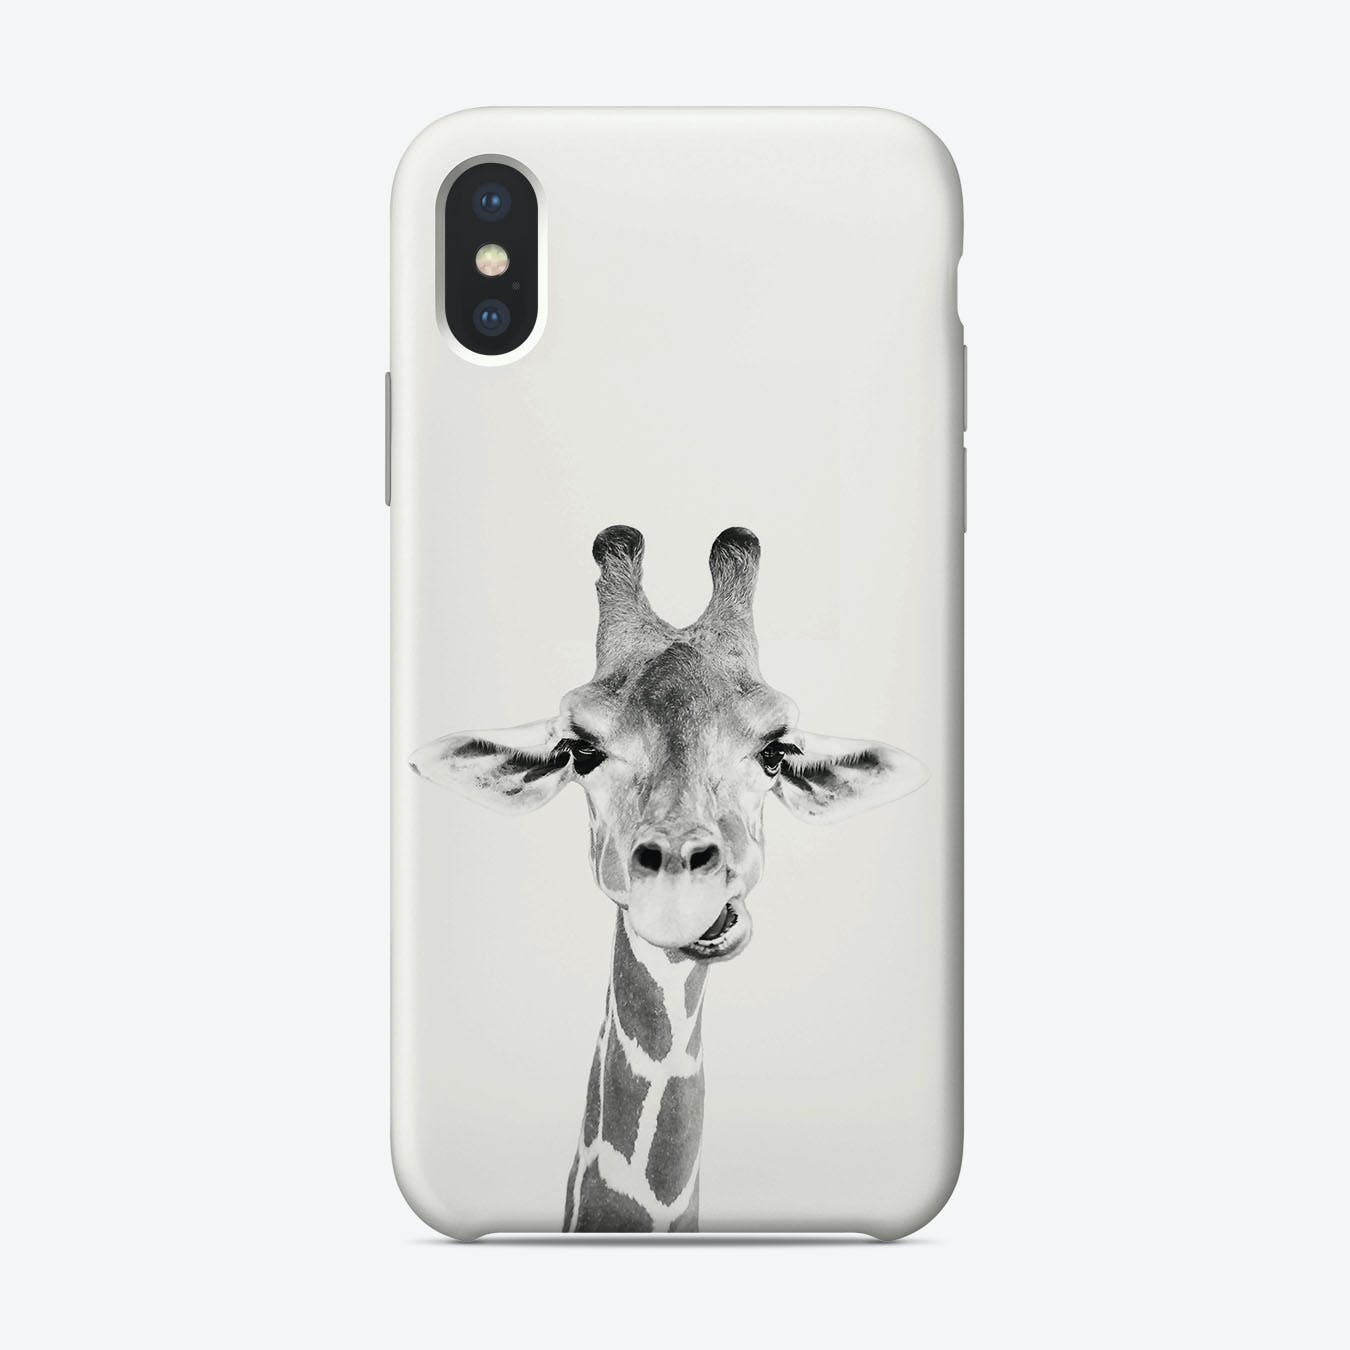 Happy Giraffe iPhone Case